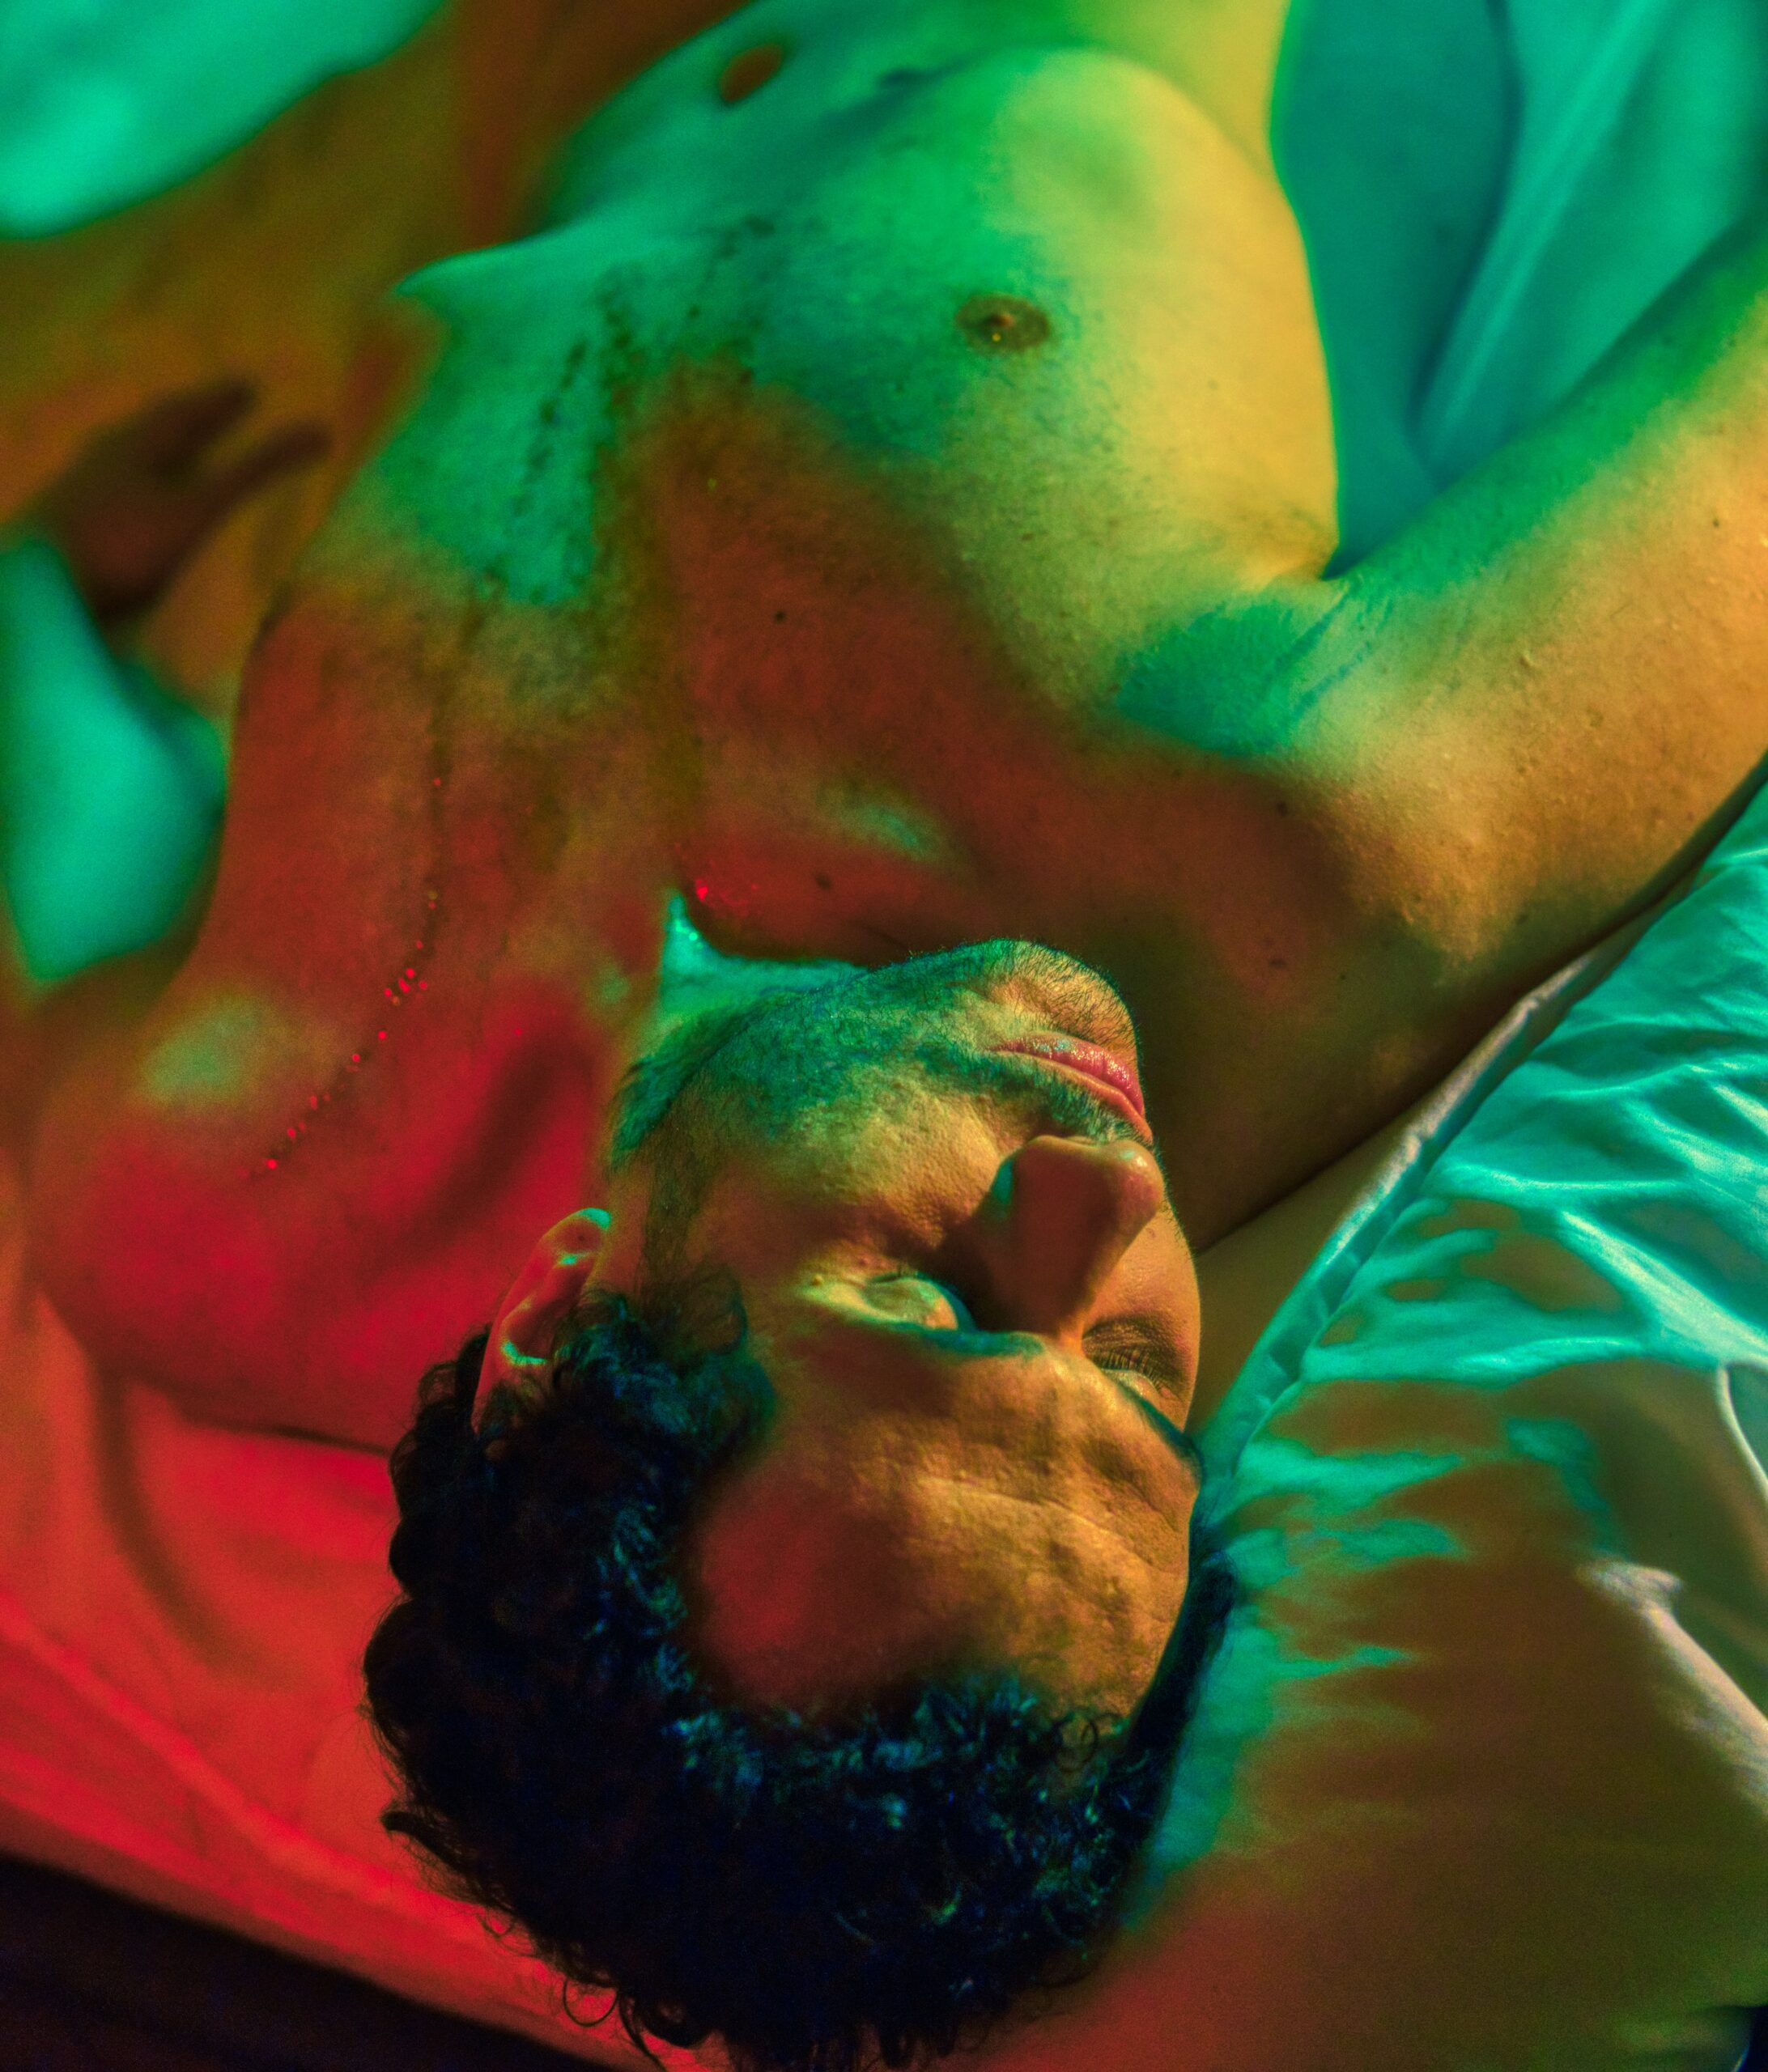 Topless man lying on bed - Sensual, erotic and intimate portrait of a naked guy